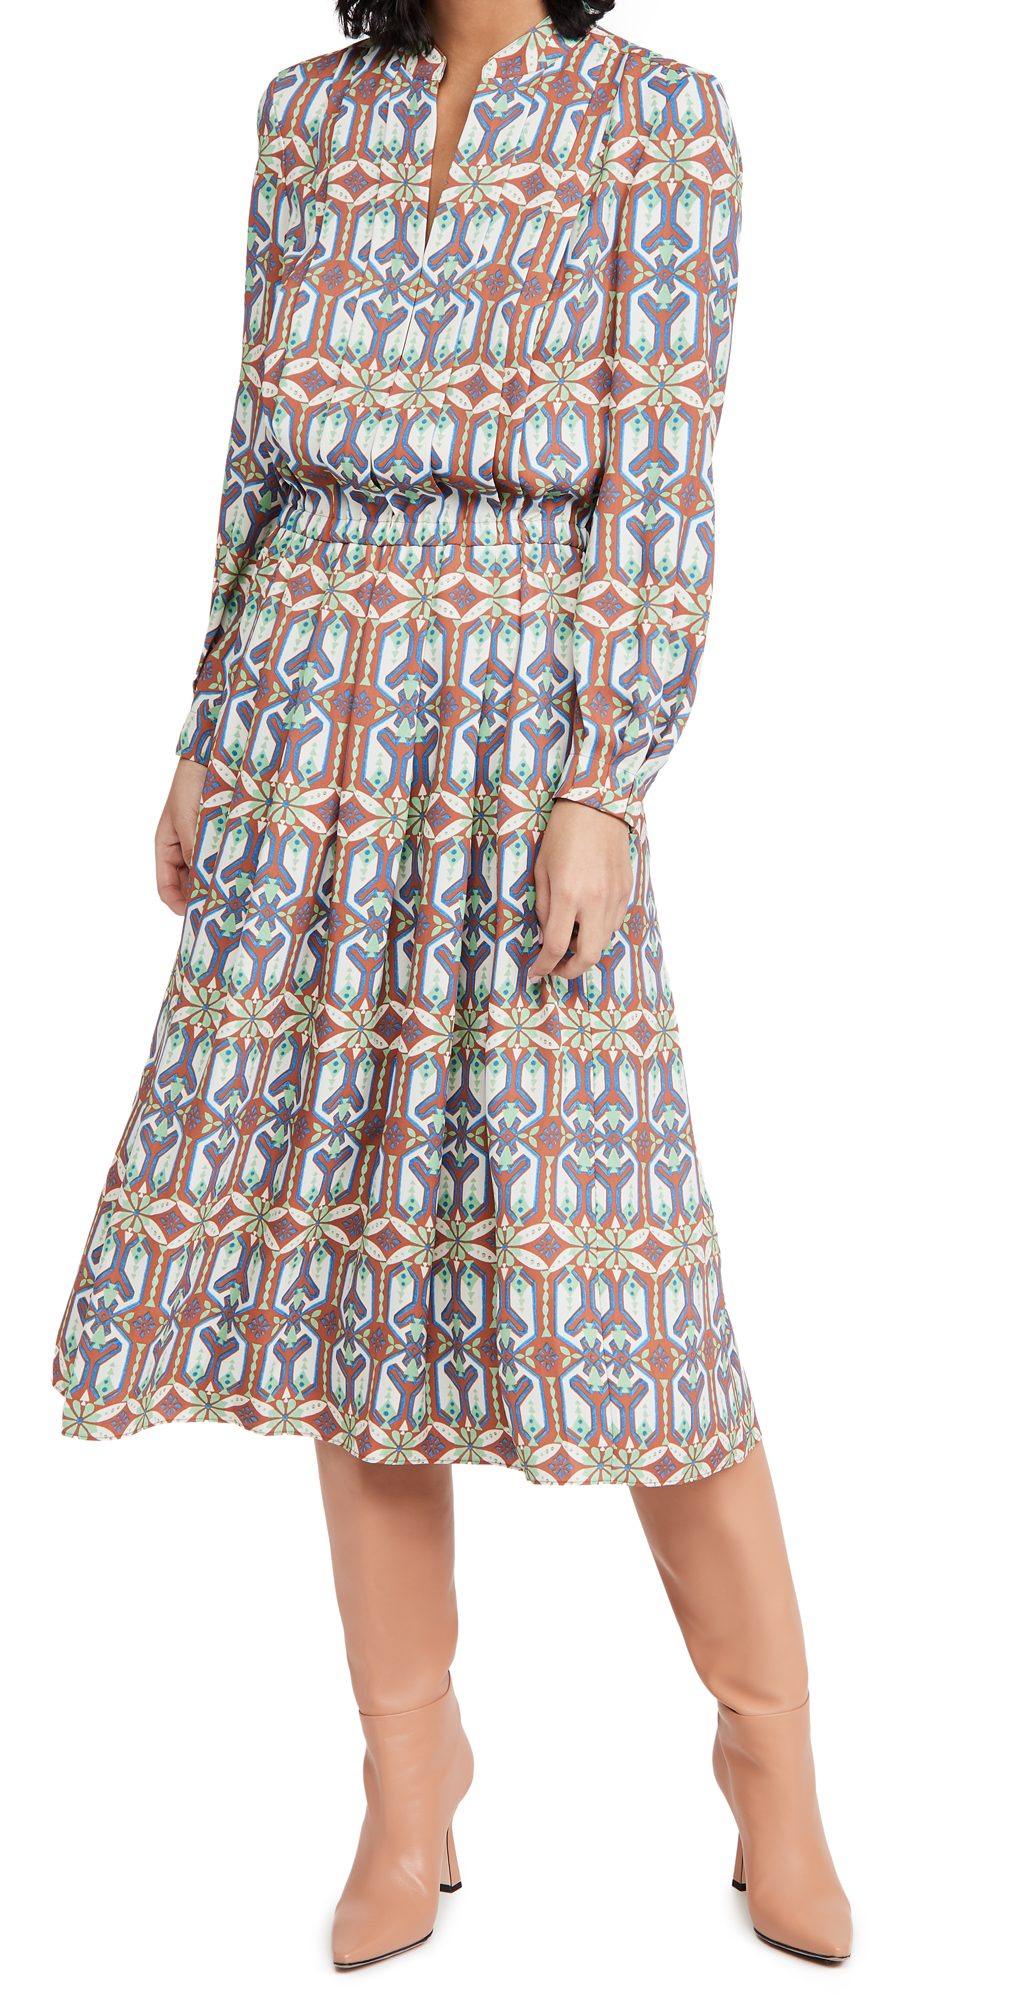 Tory Burch Garden Maze Shirtdress